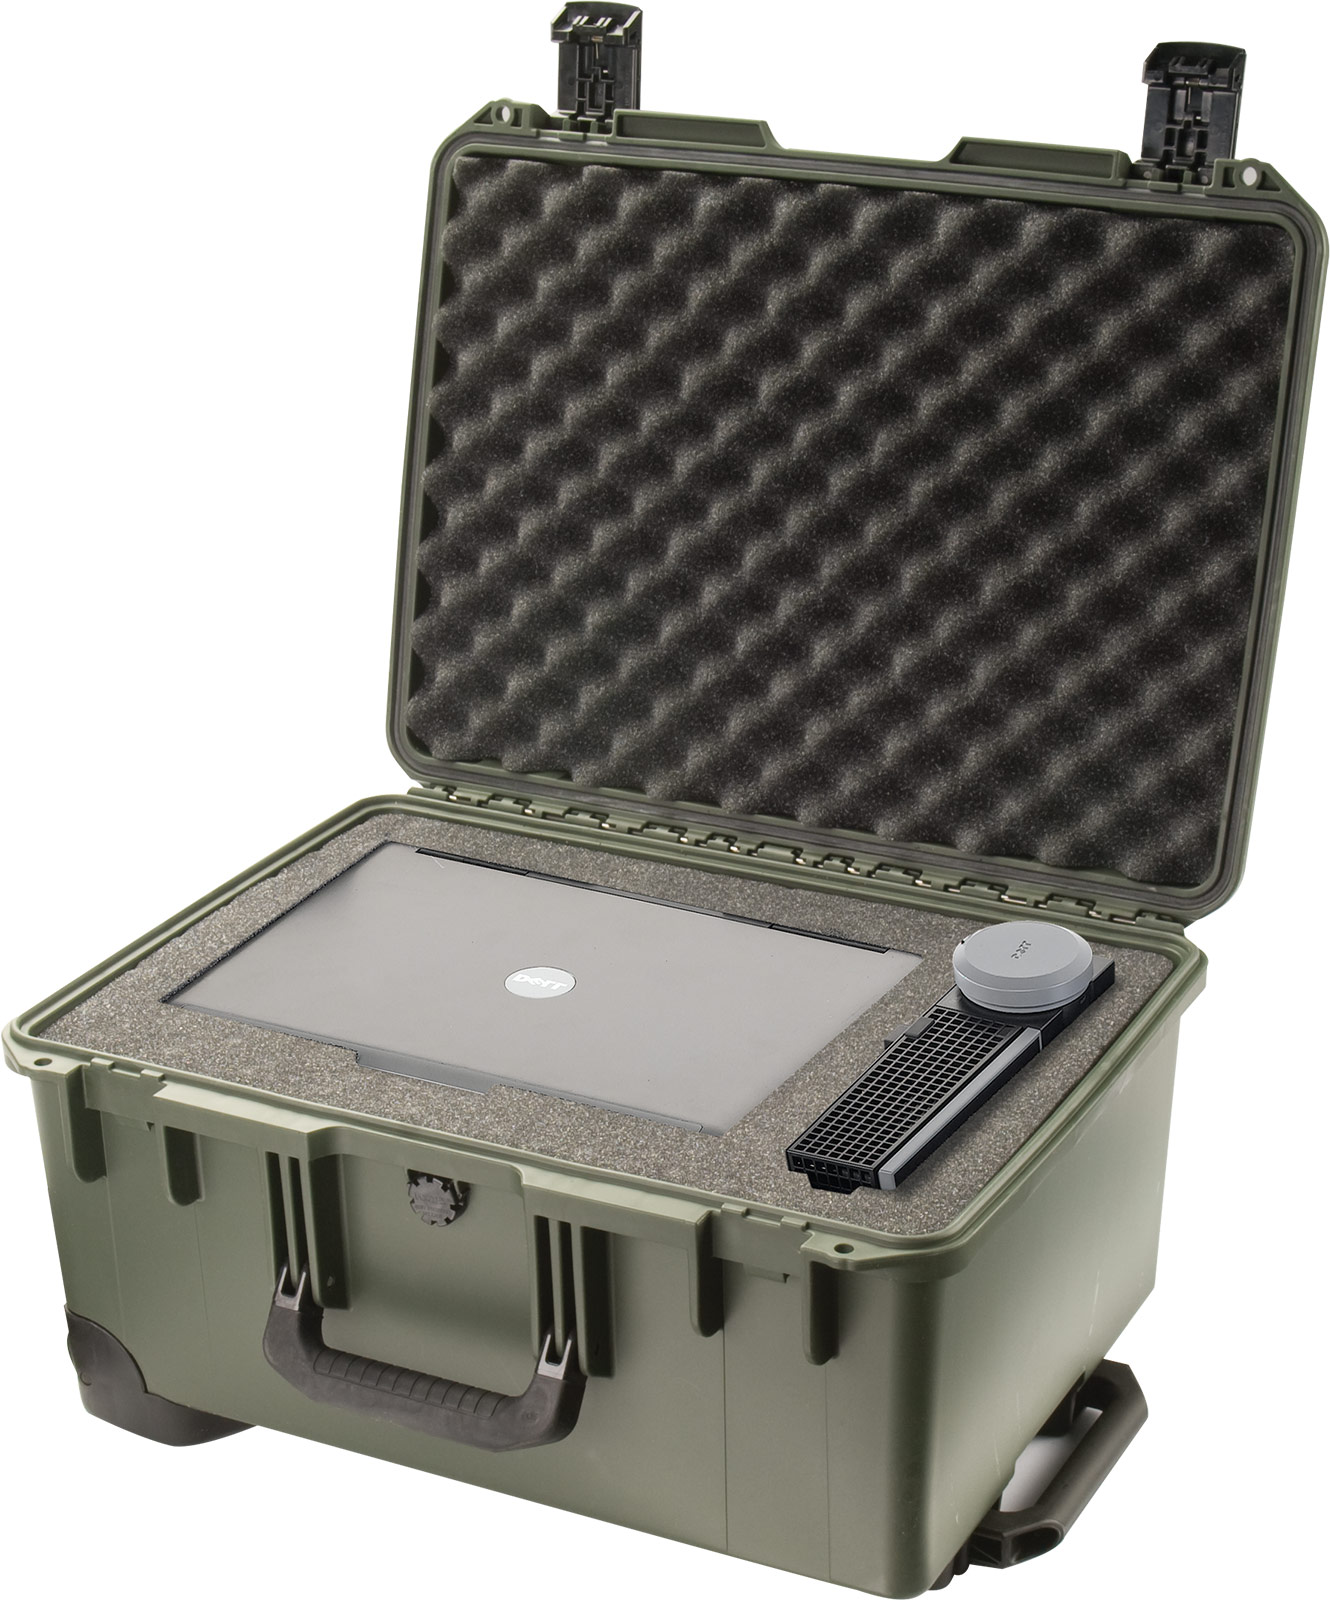 pelican im2620 lightweight travel case